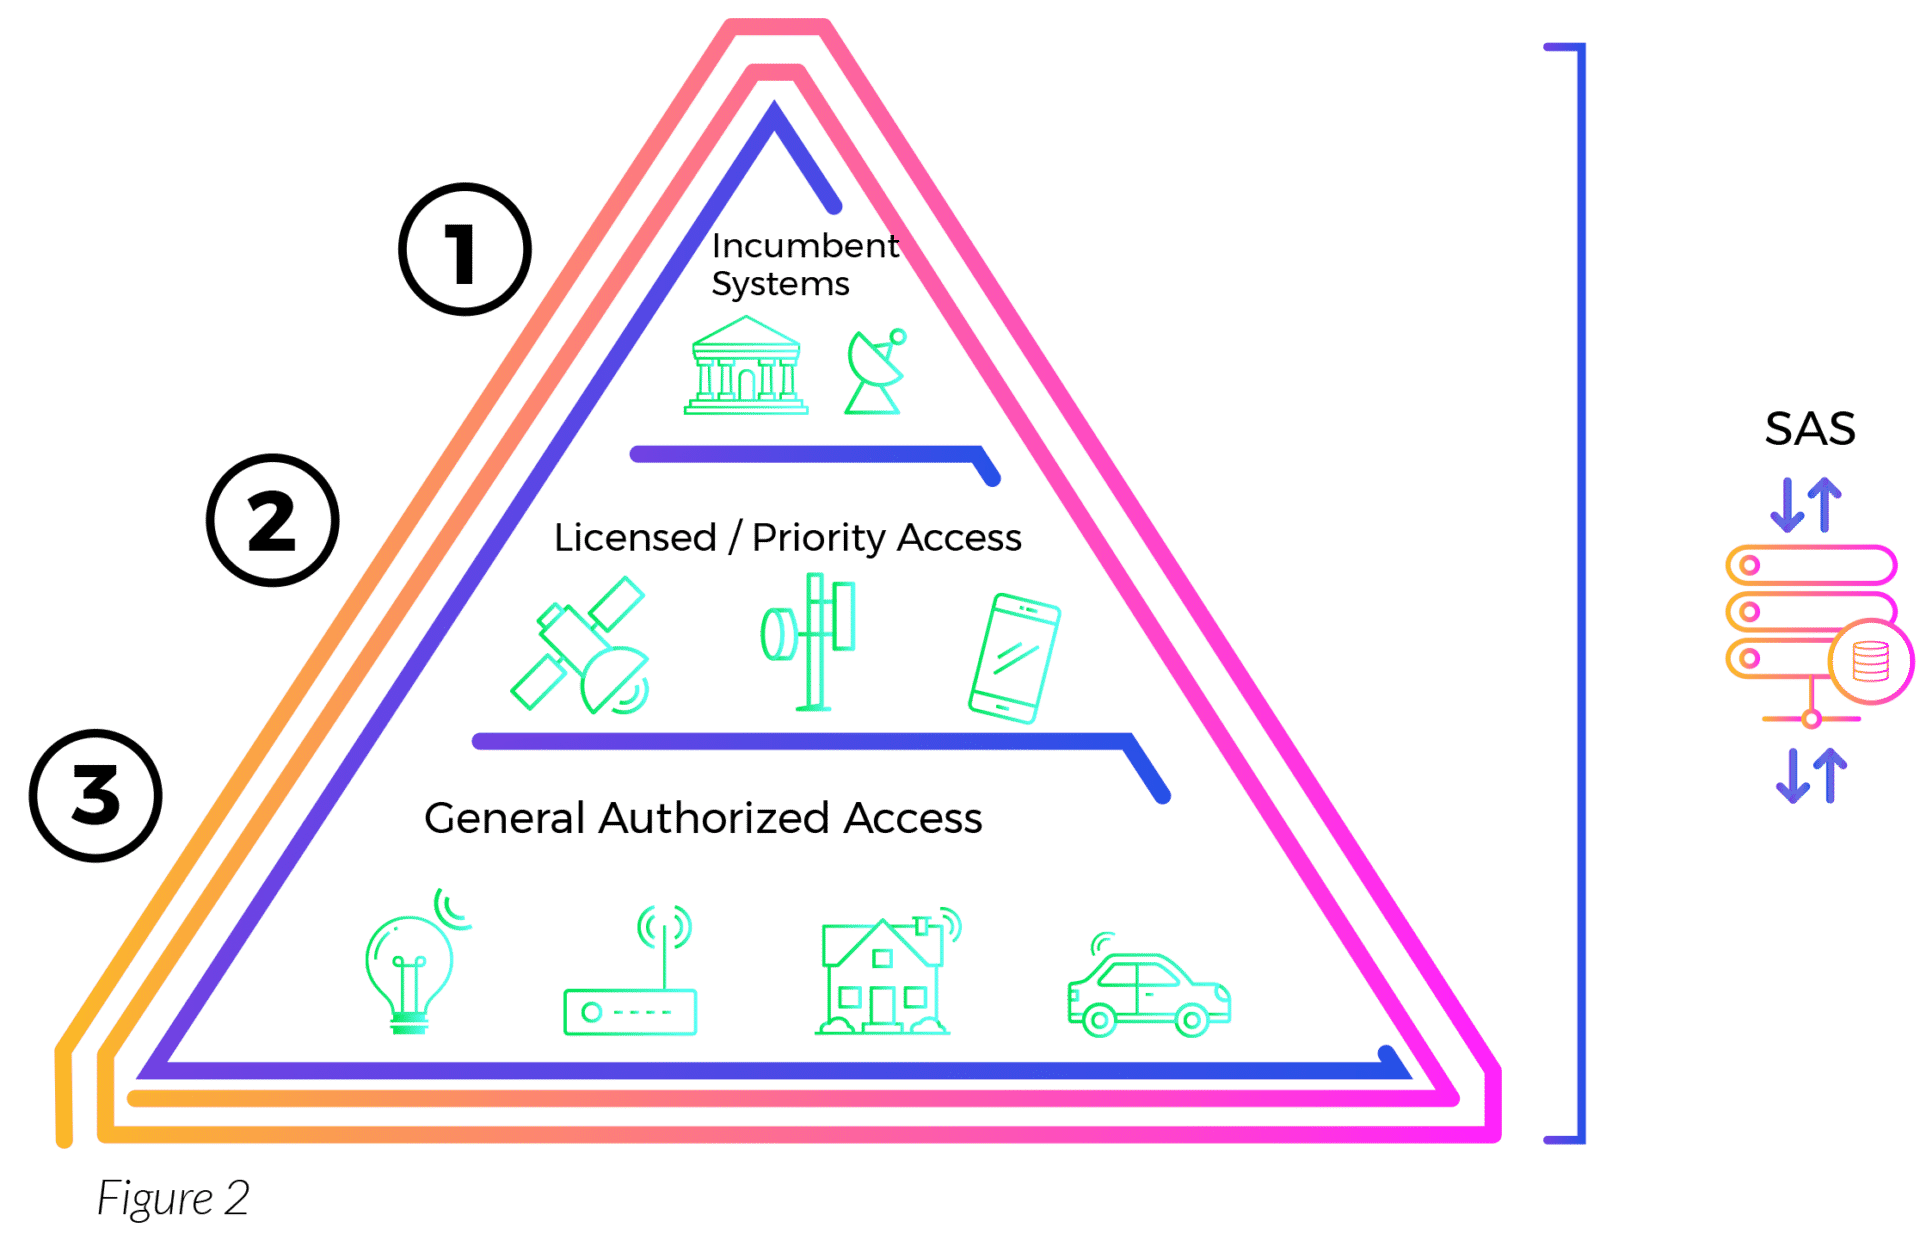 What is CBRS? - LTE in 3.5 GHz Shared Spectrum - Role of SAS and Neutral Hosts